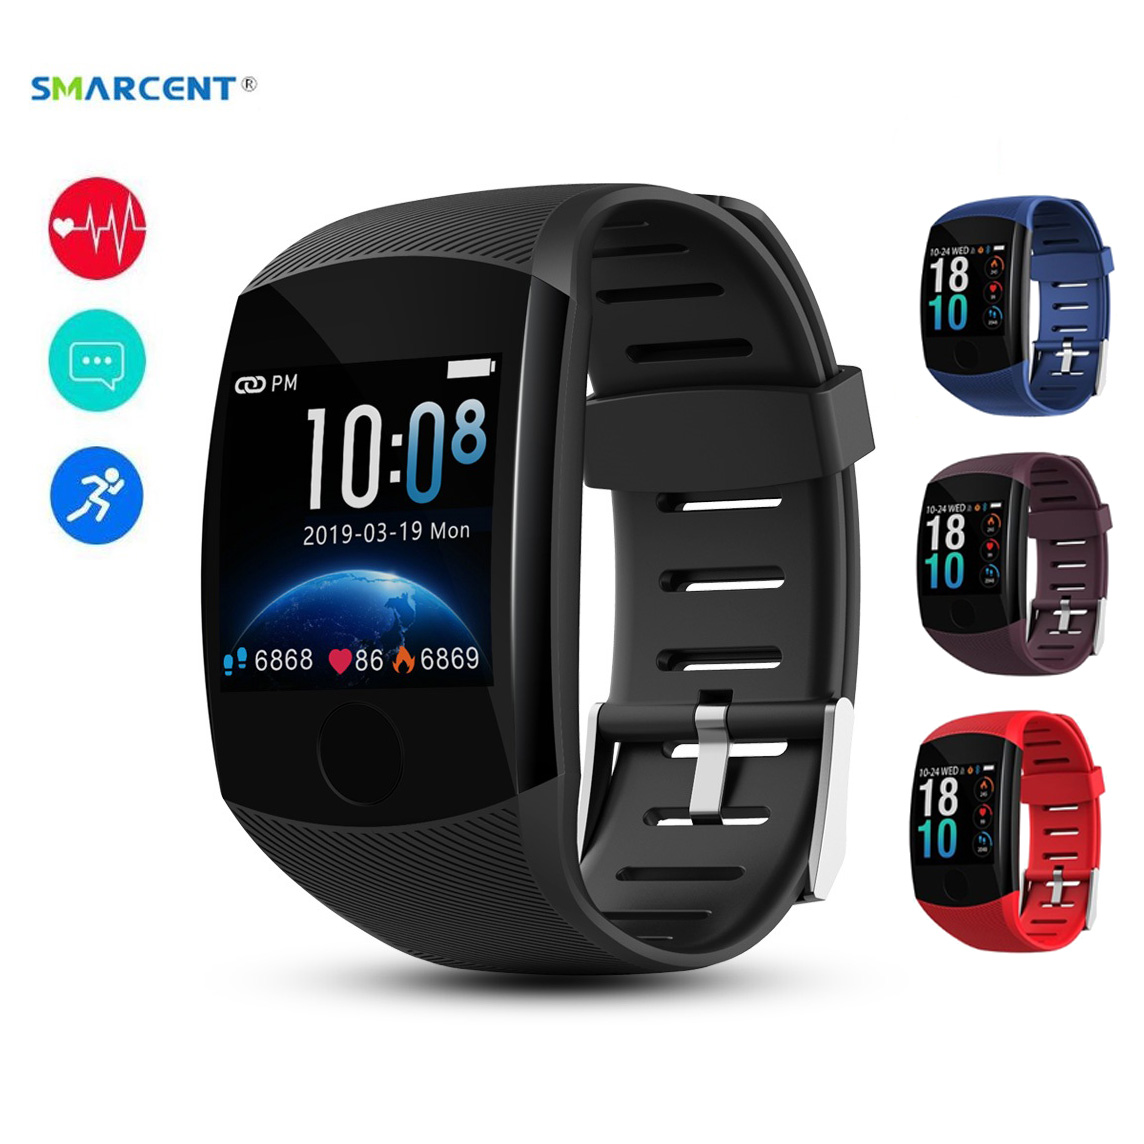 NEW Q11 Smart Watch Touch Screen IP67 Waterproof Fitness Bracelet <font><b>OLED</b></font> Message Heart Rate Smartband Activity Tracker sport watch image